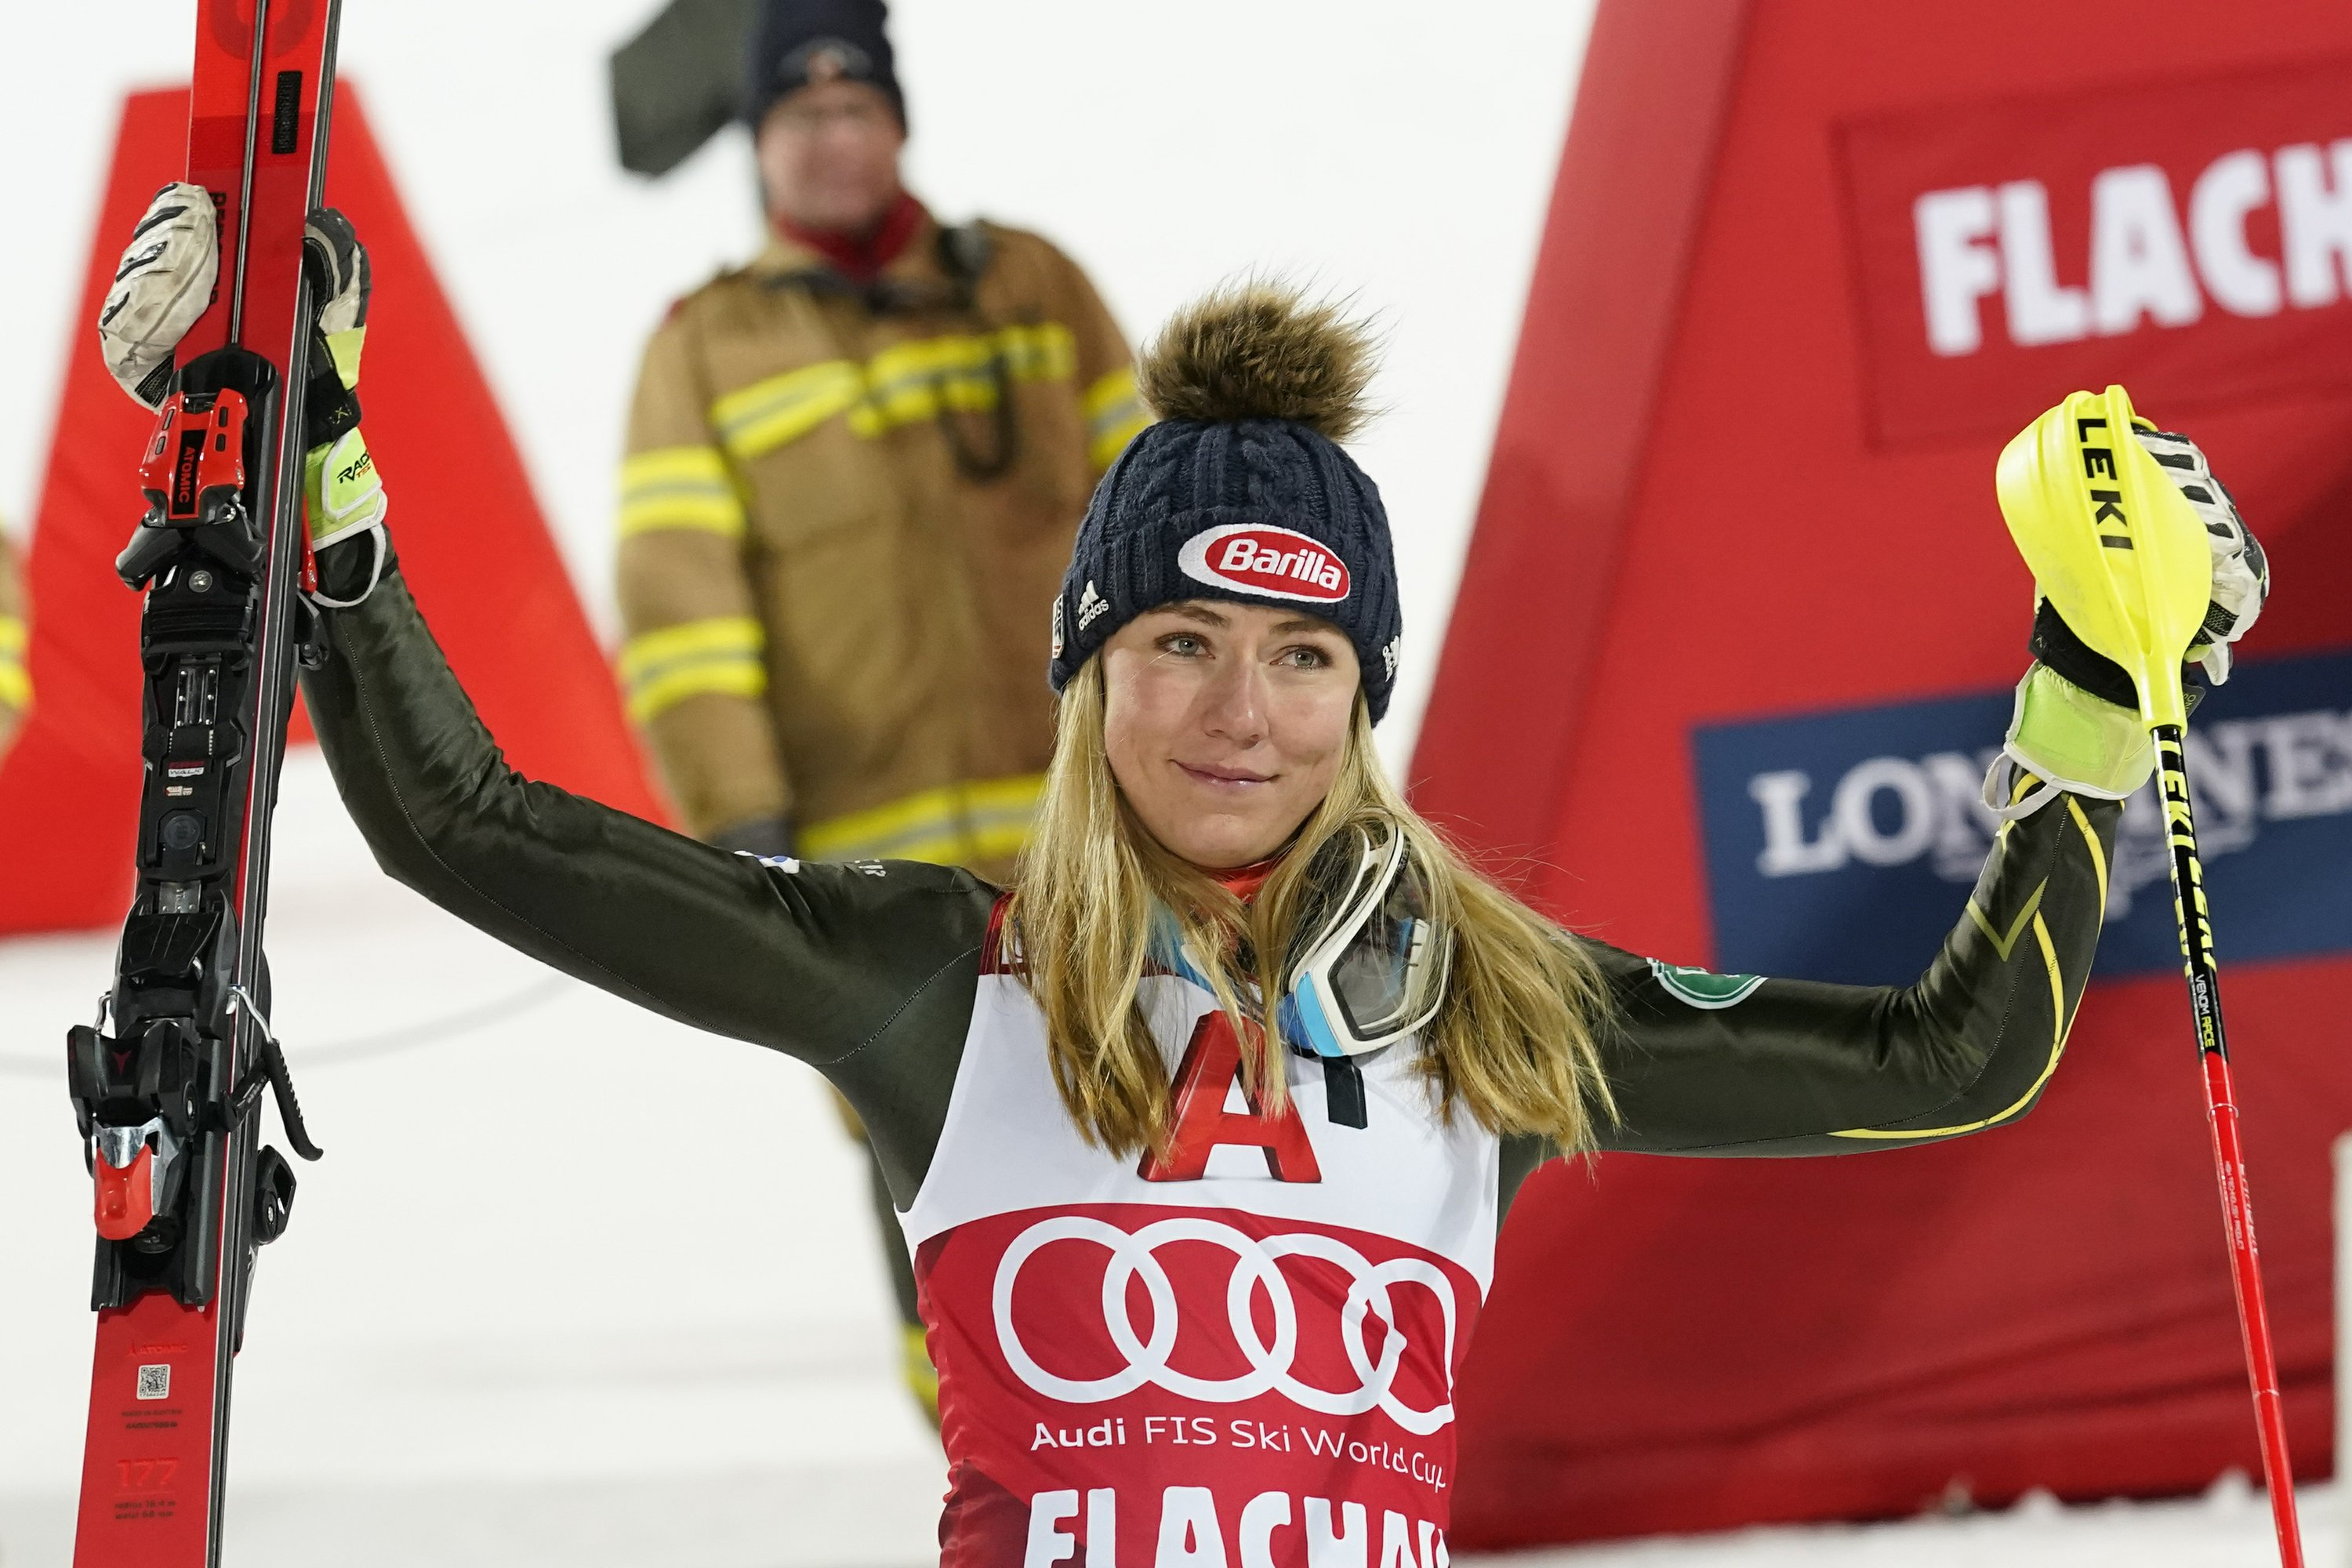 Shiffrin fights fatigue in quest for 4th straight overall